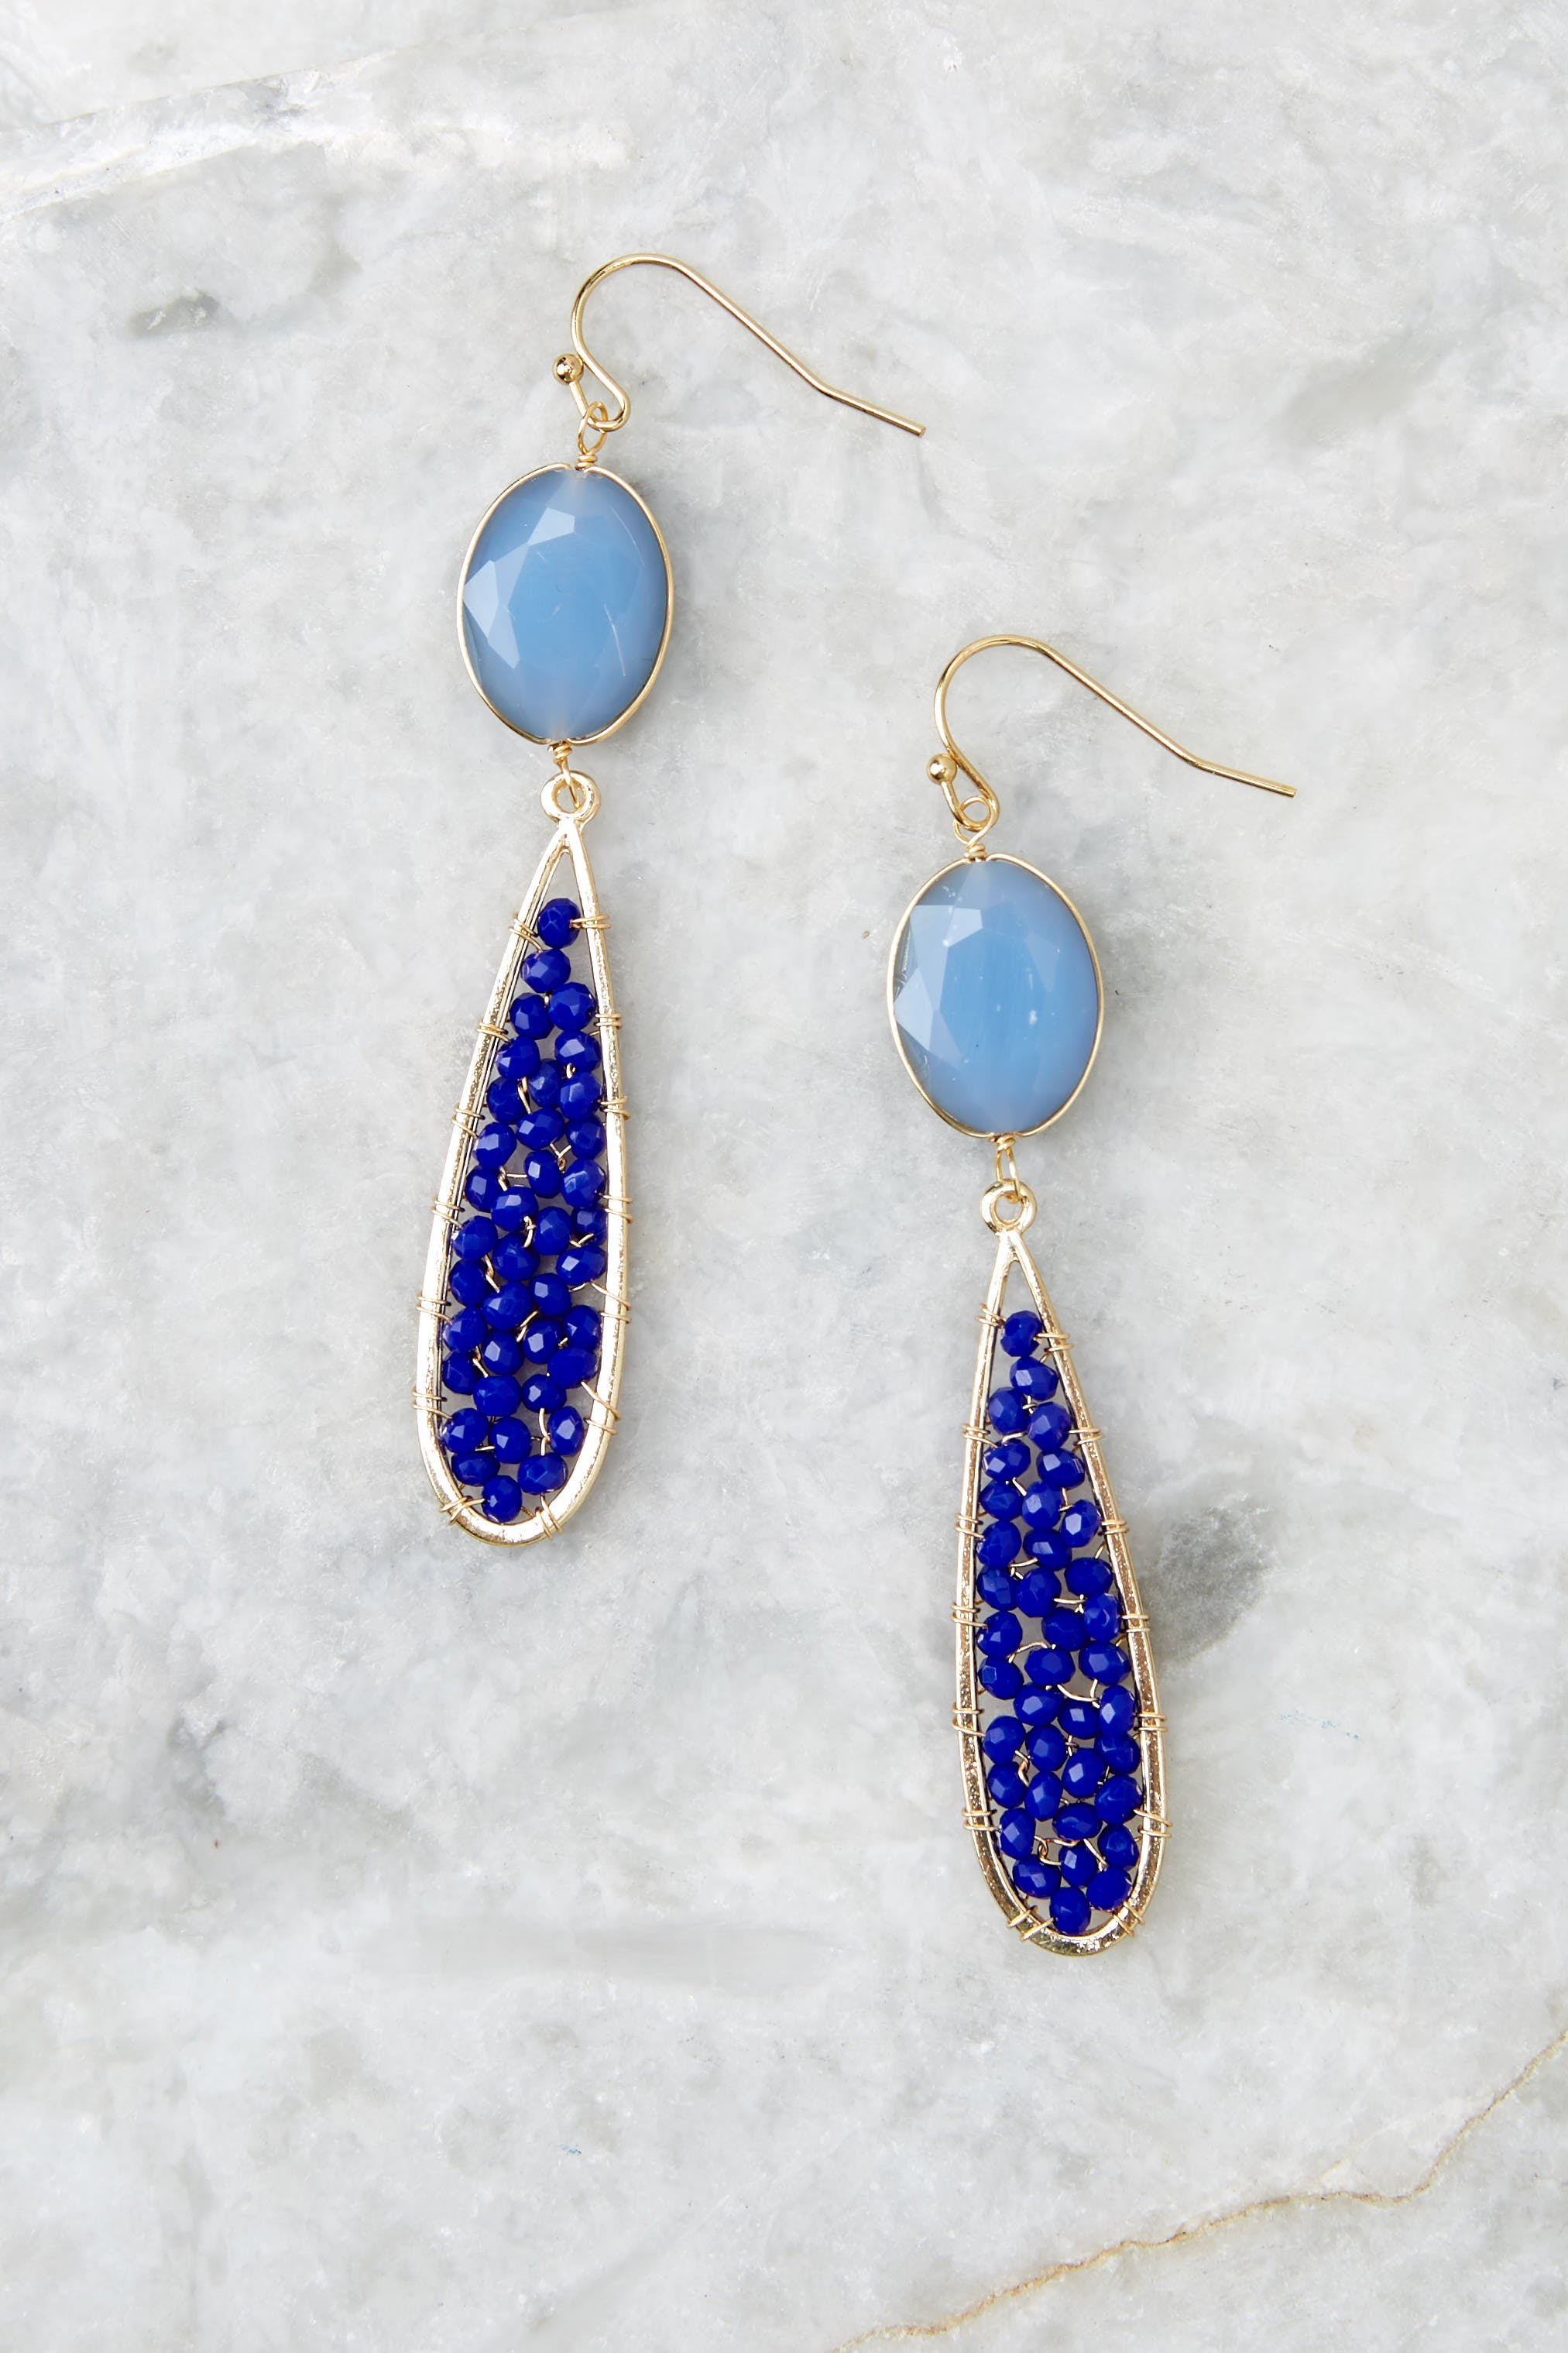 Across The Room Blue Beaded Earrings at Red Dress.com